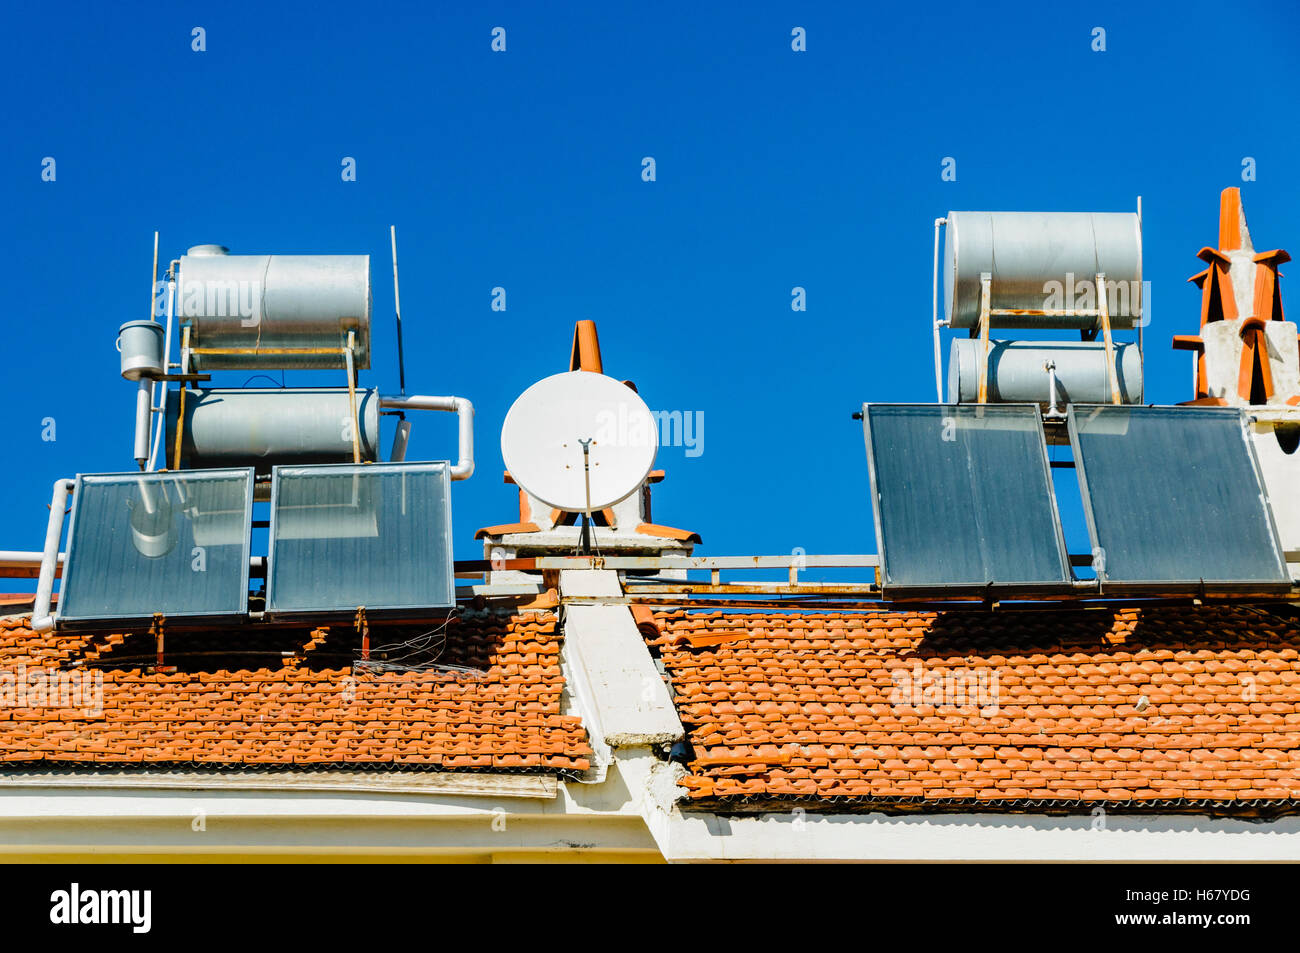 Solar water heaters and satellite dishes on the roof of a building.in a hot climate - Stock Image